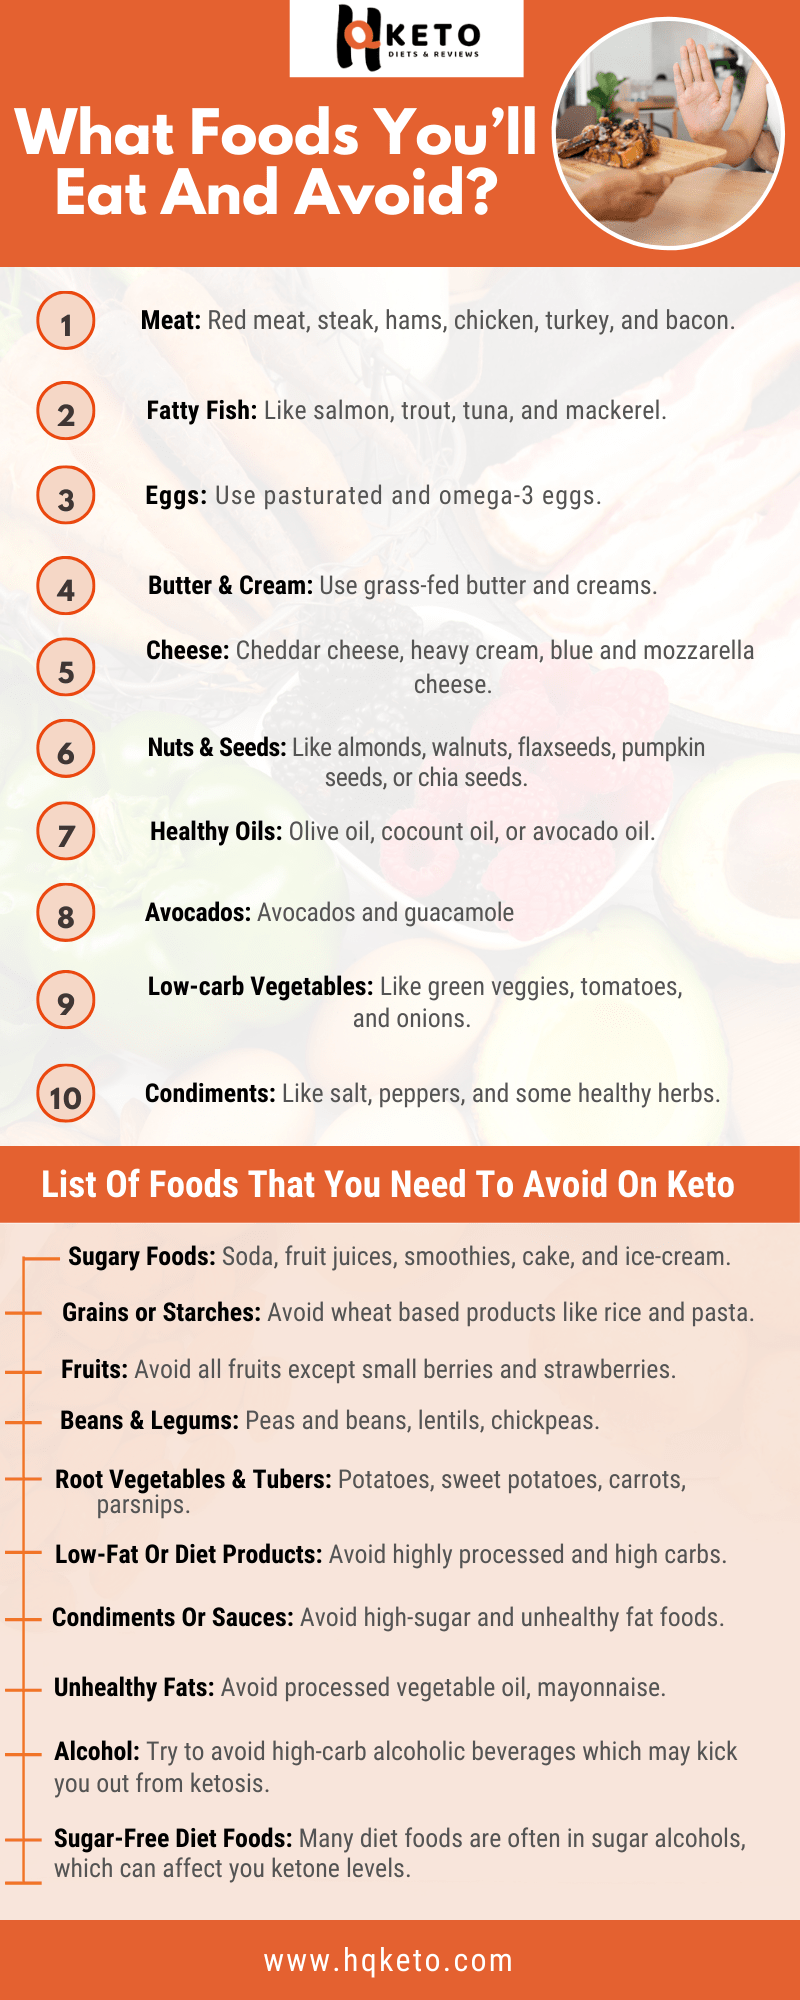 Which Foods Avoid on keto diet